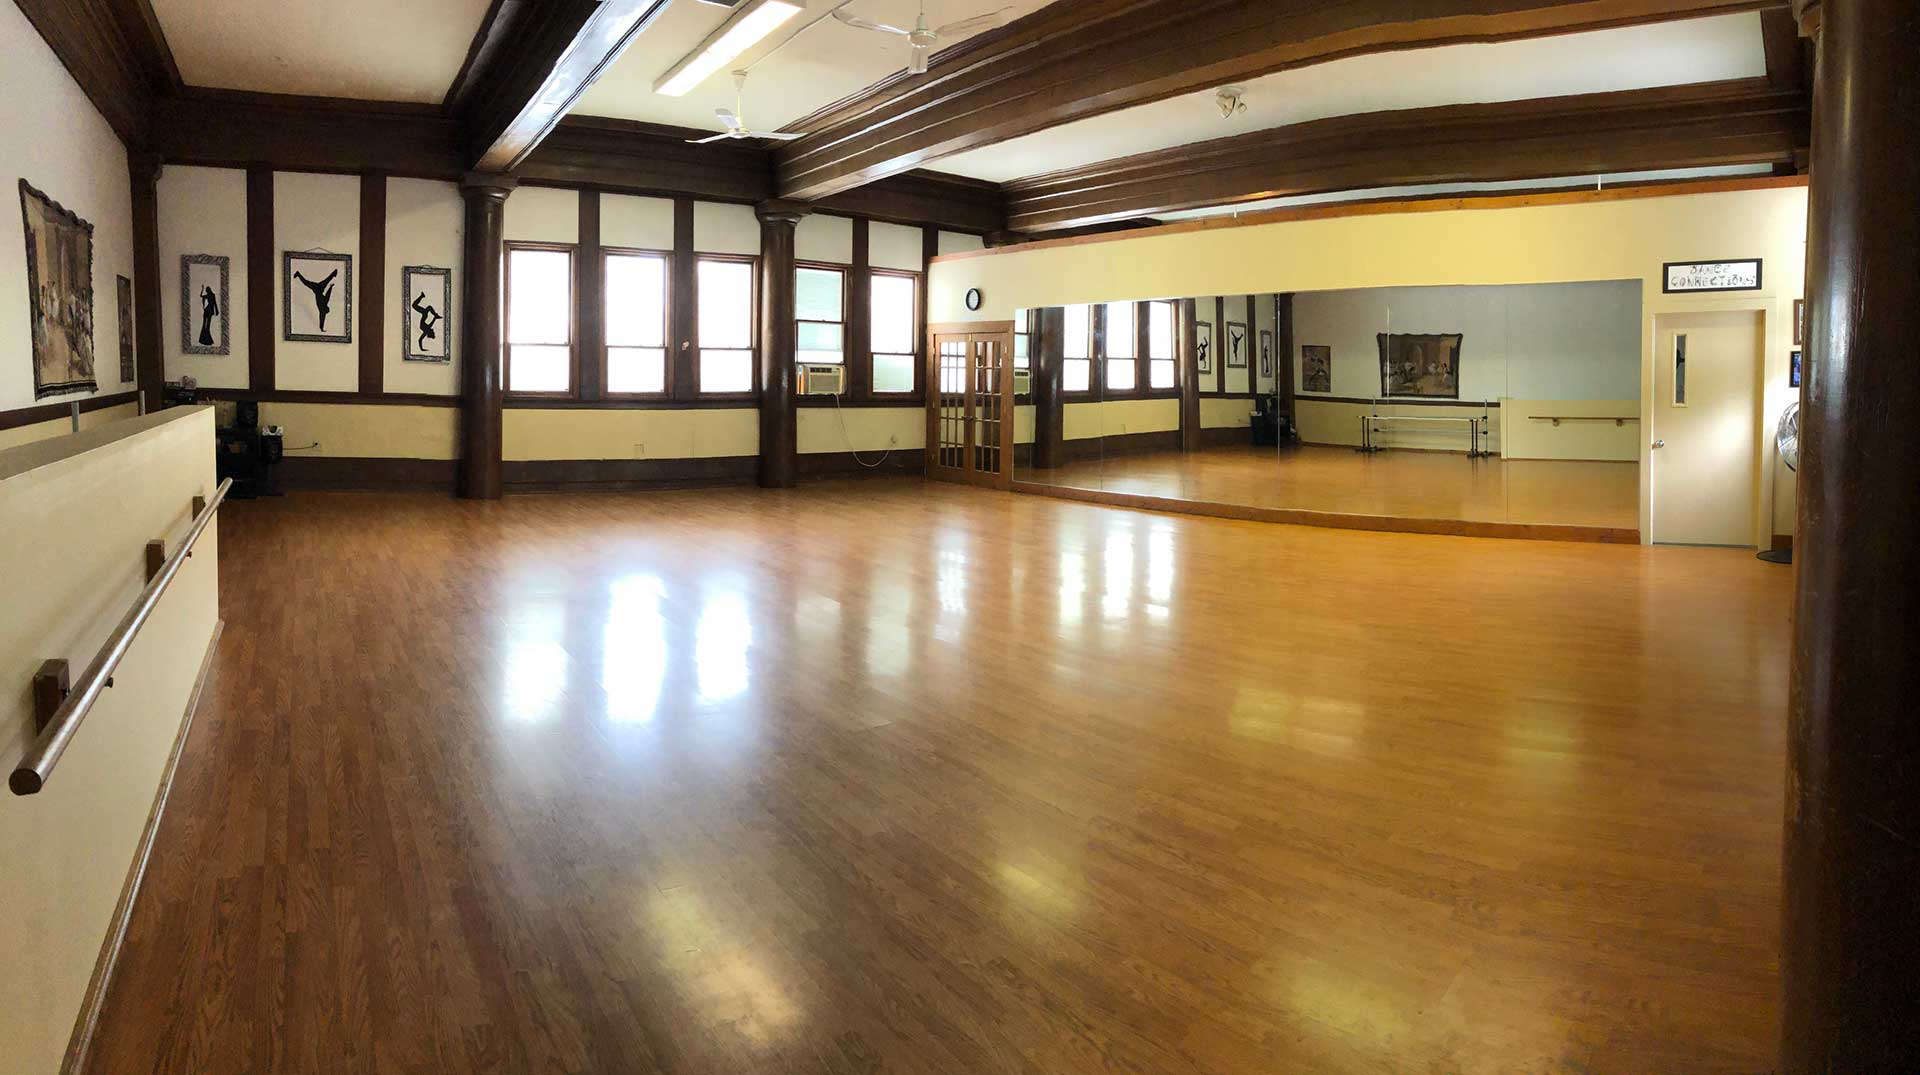 empty dance studio room with wood floors and wall of mirrors